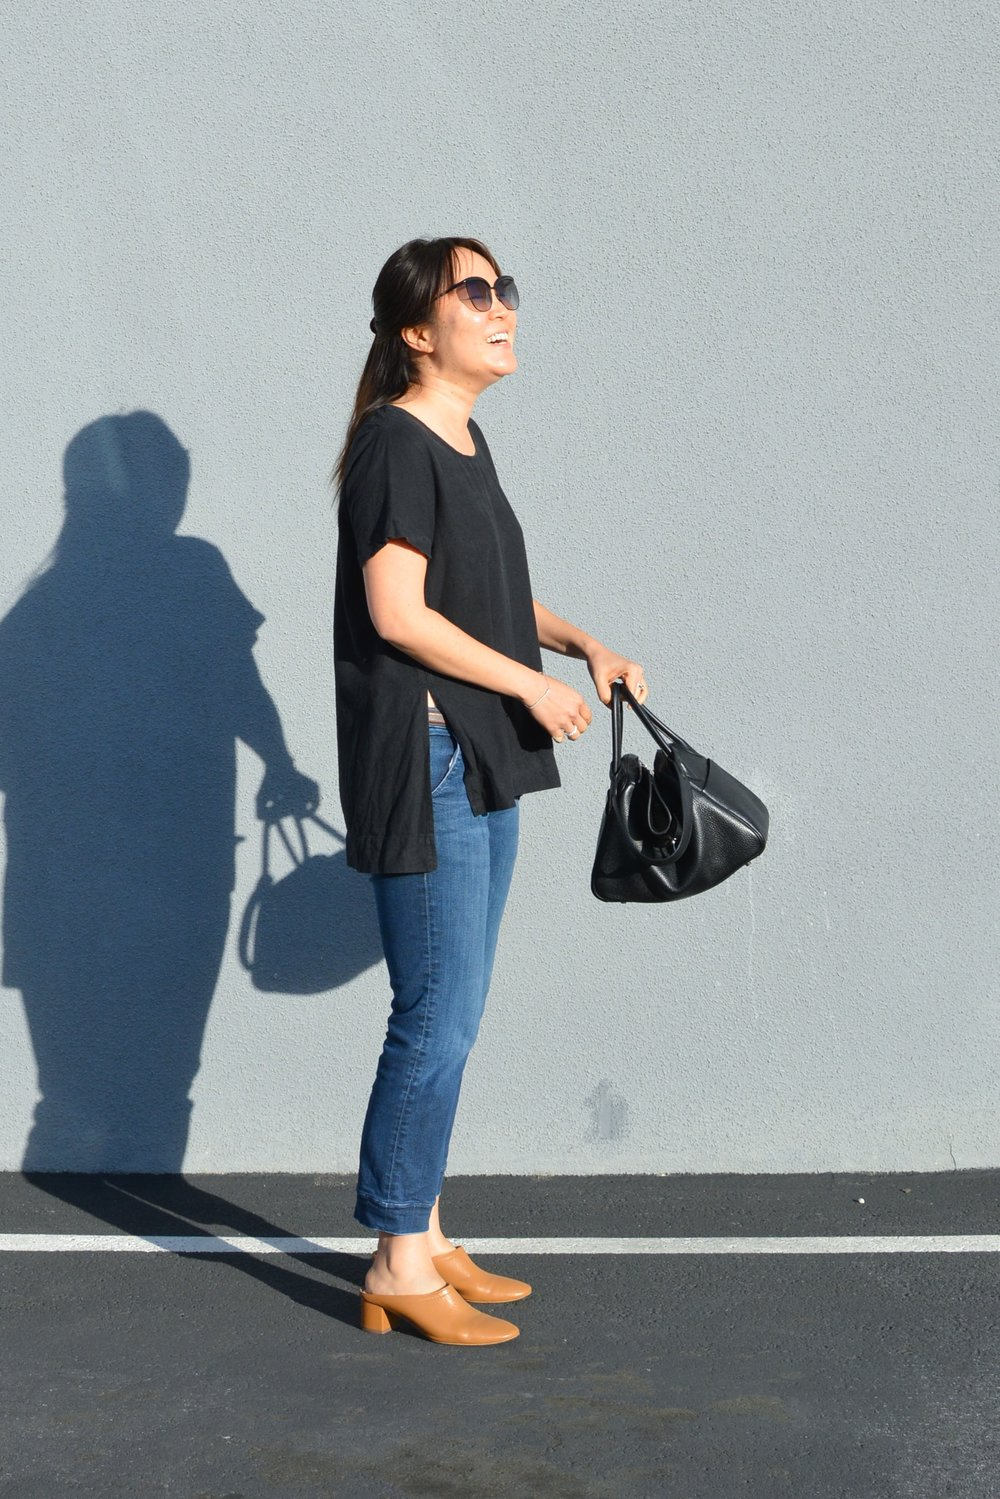 Jamie and the Jones Review The Stable Basic Split Tee Top  (3 of 6)-min.jpg